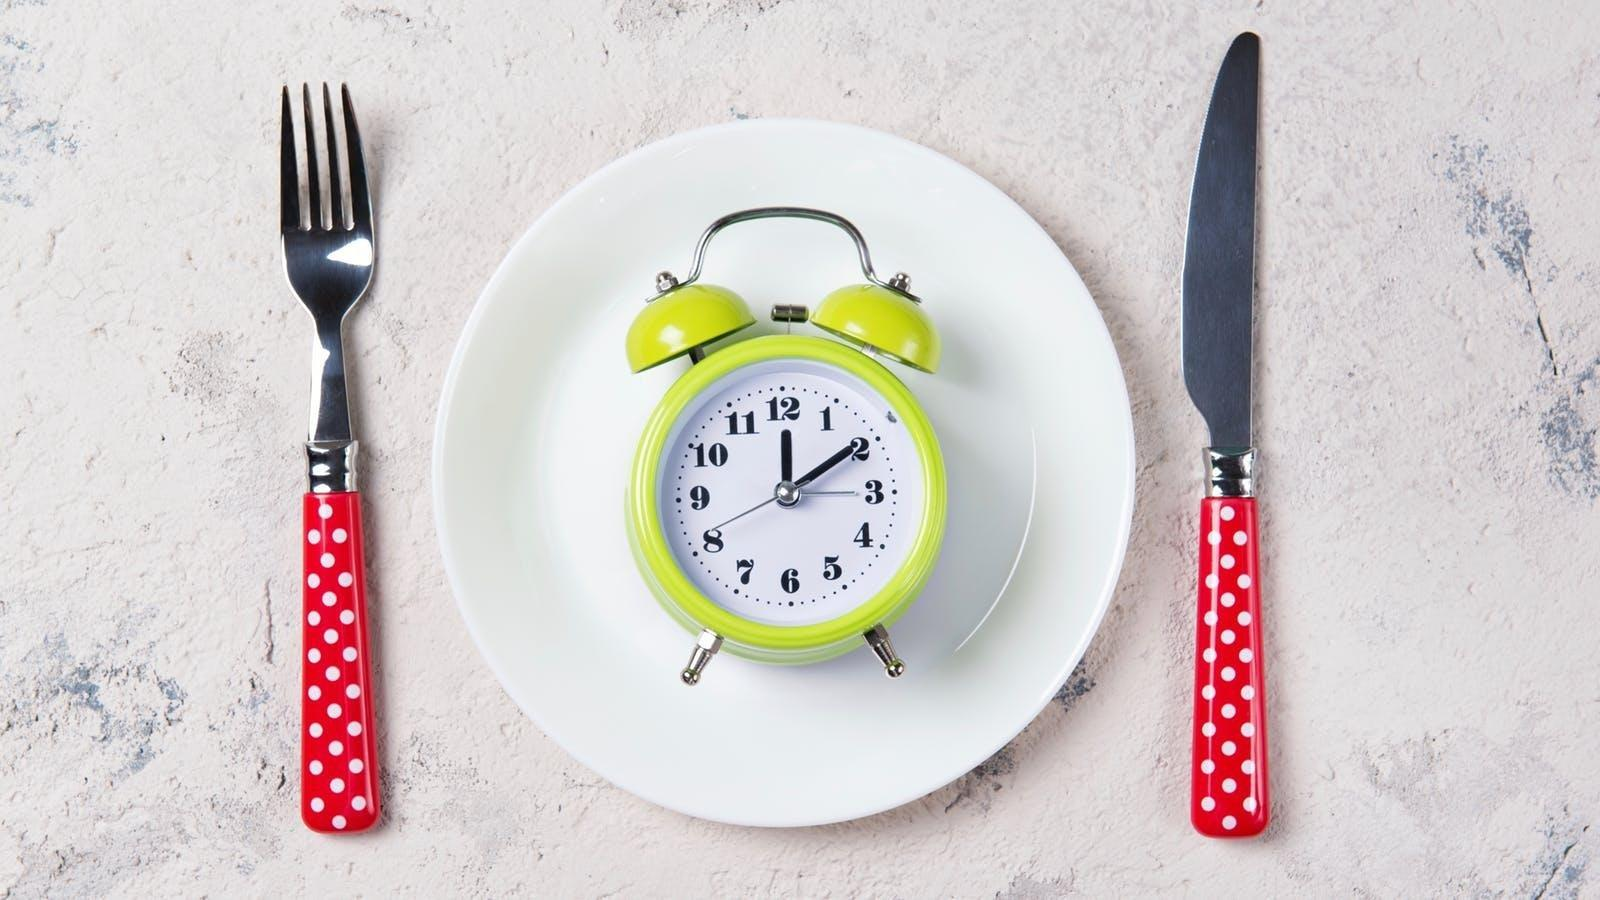 Intermittent Fasting The Best Diet For Type 2 Diabetes?